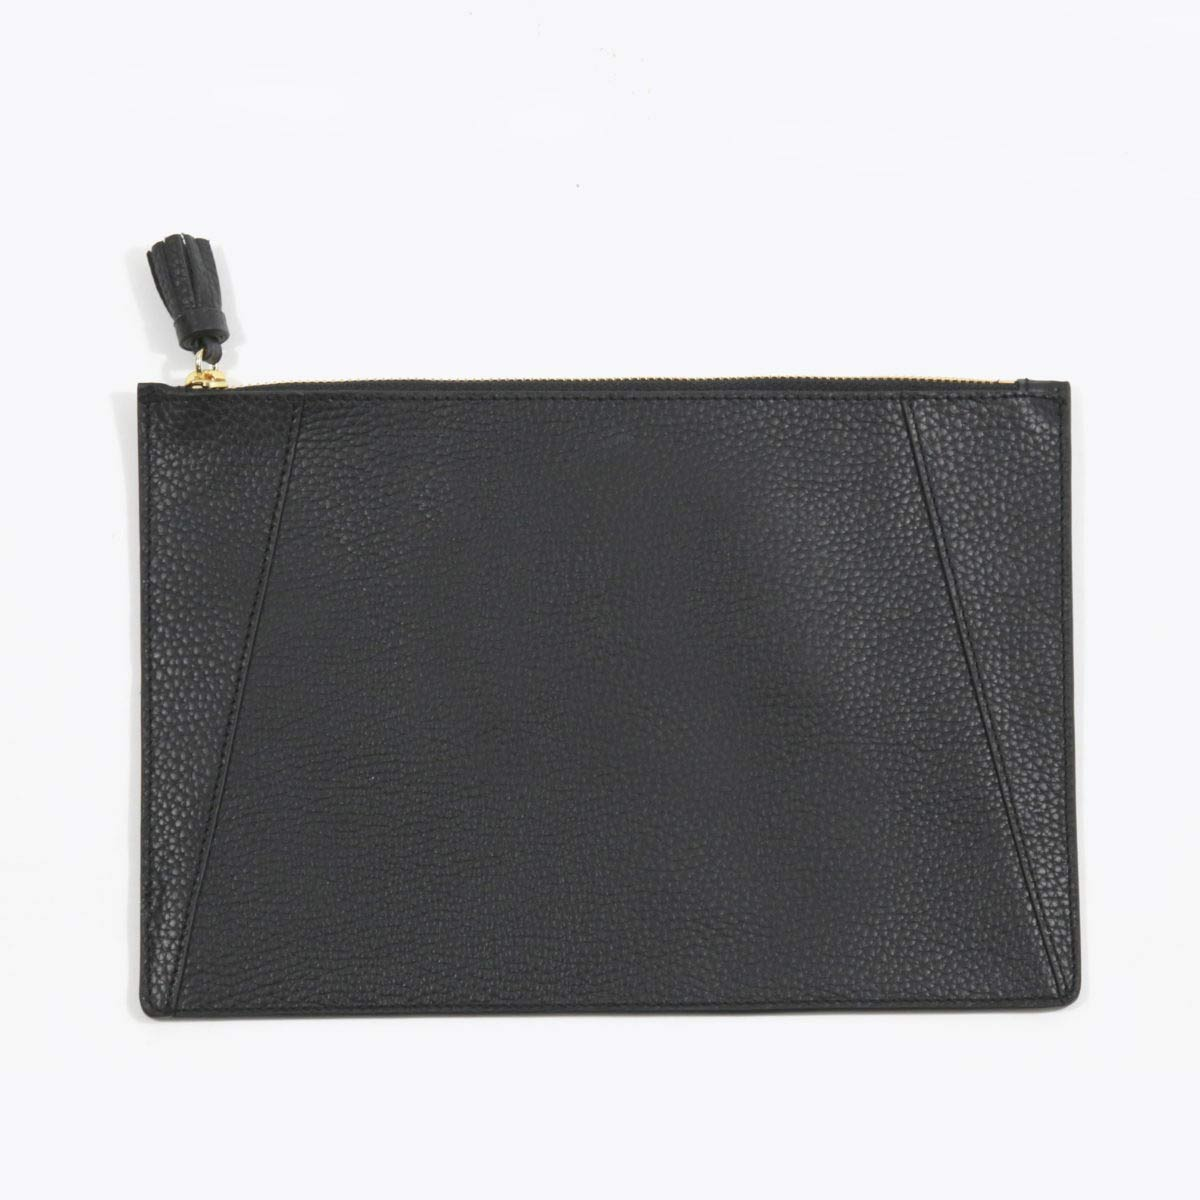 Neely Chloe Flat Clutch Pebble Black